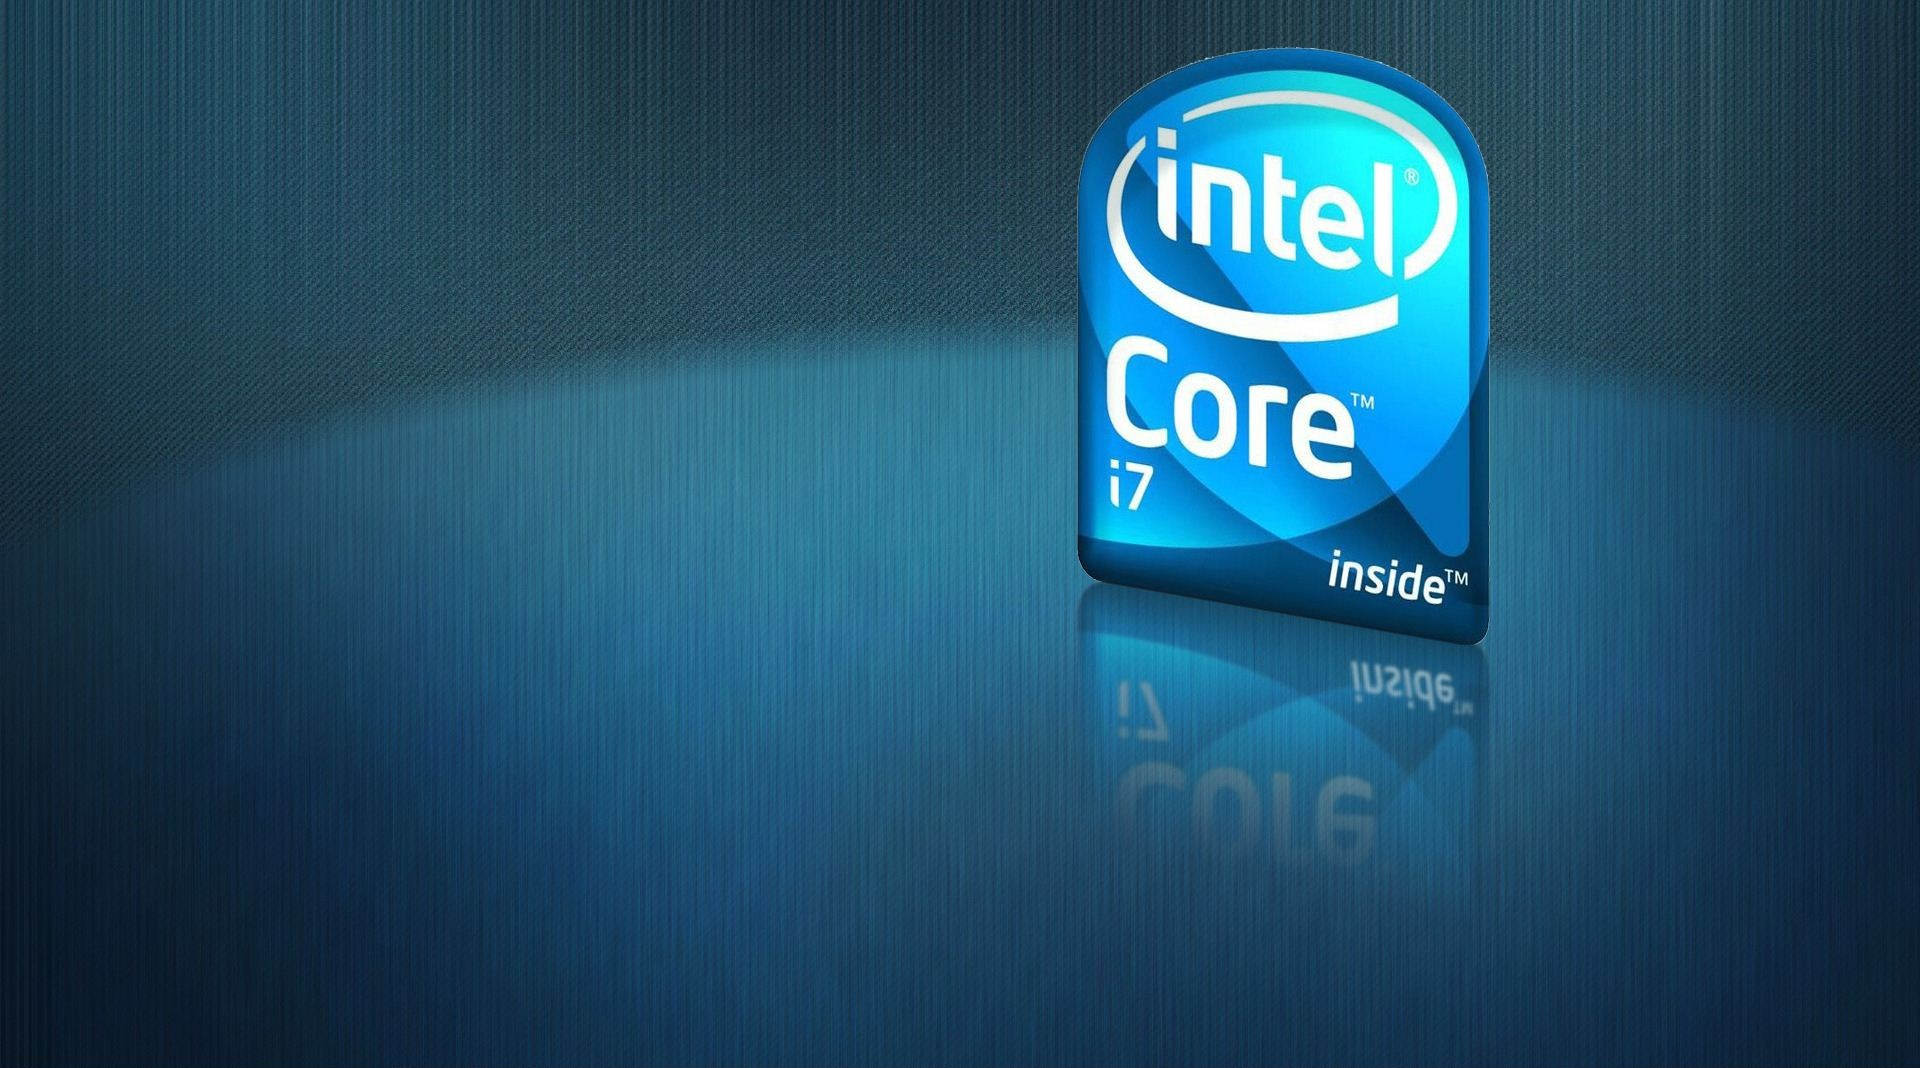 Intel Logo Desktop Wallpapers Download Desktop Wallpaper Images 1920x1068